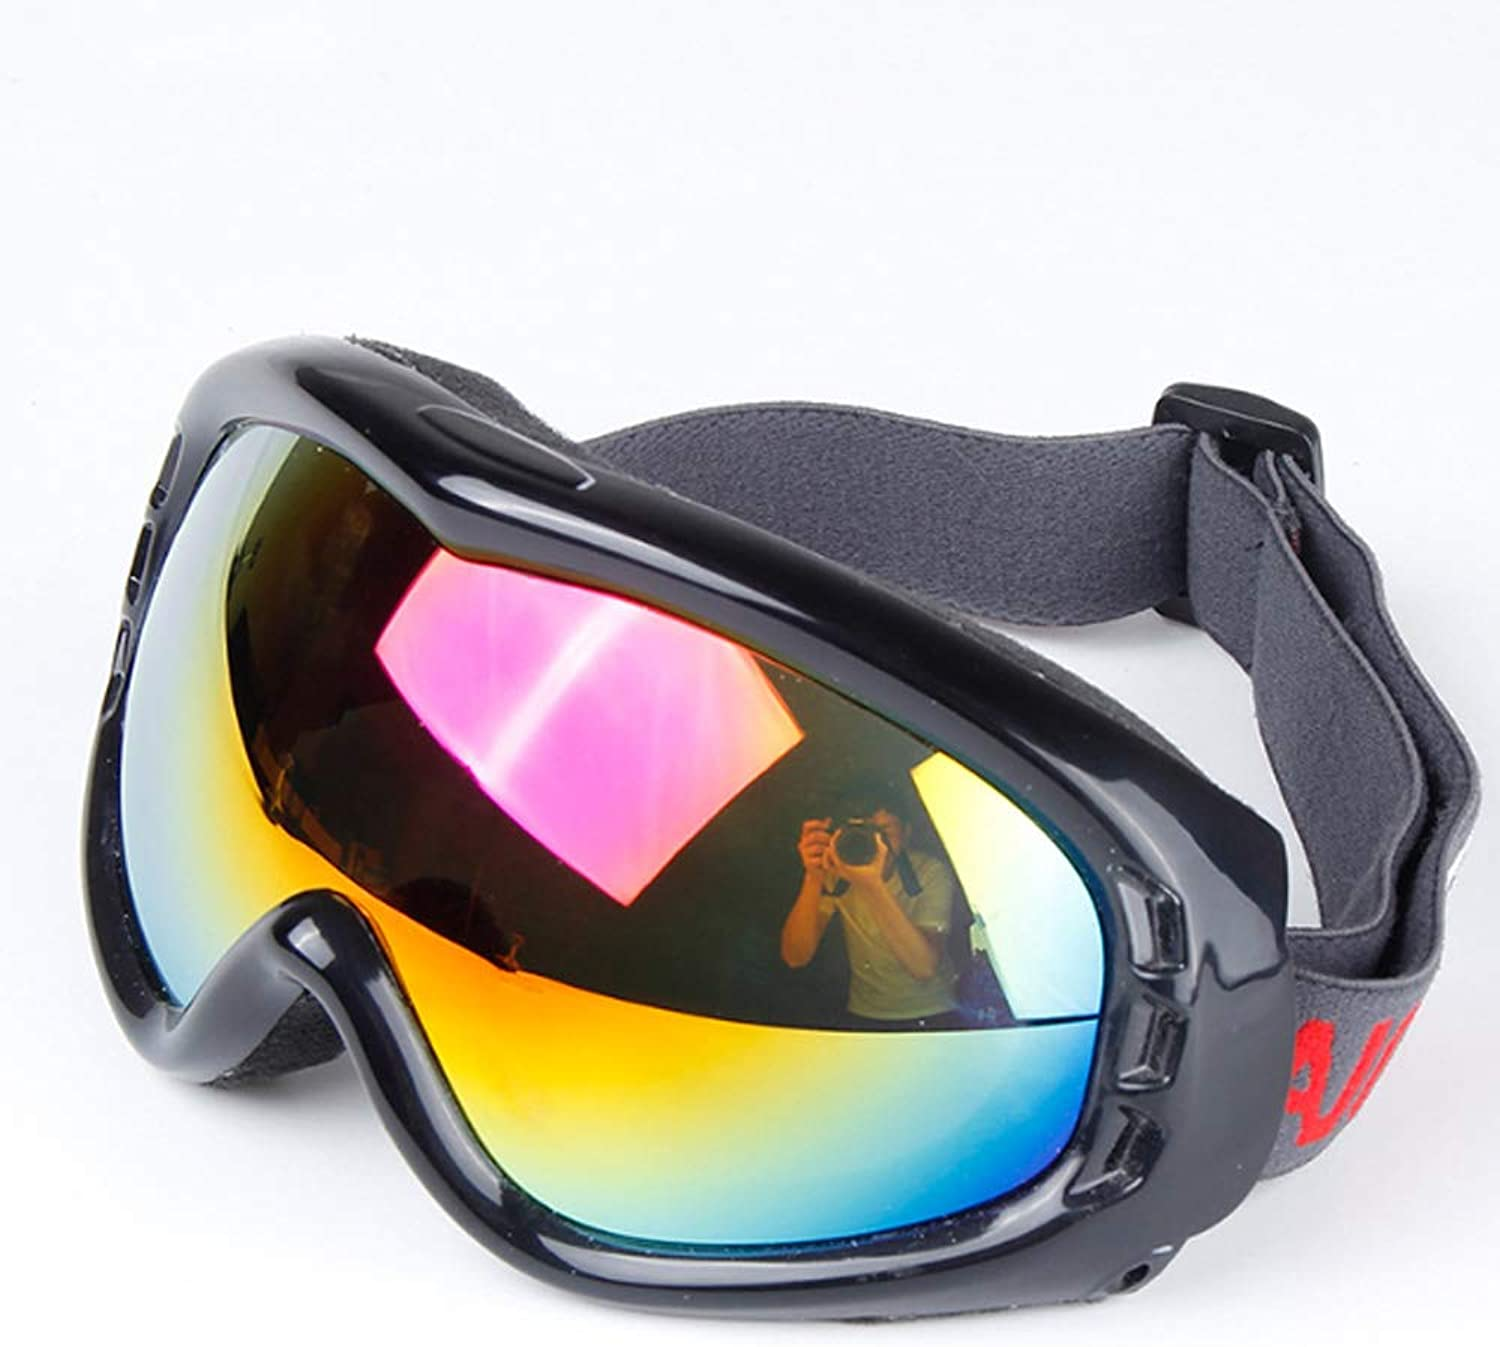 Ski Goggles for Men and Women, Mountaineering Goggles SingleLayer Spherical Windshield Snow UV Predection,Brightblack